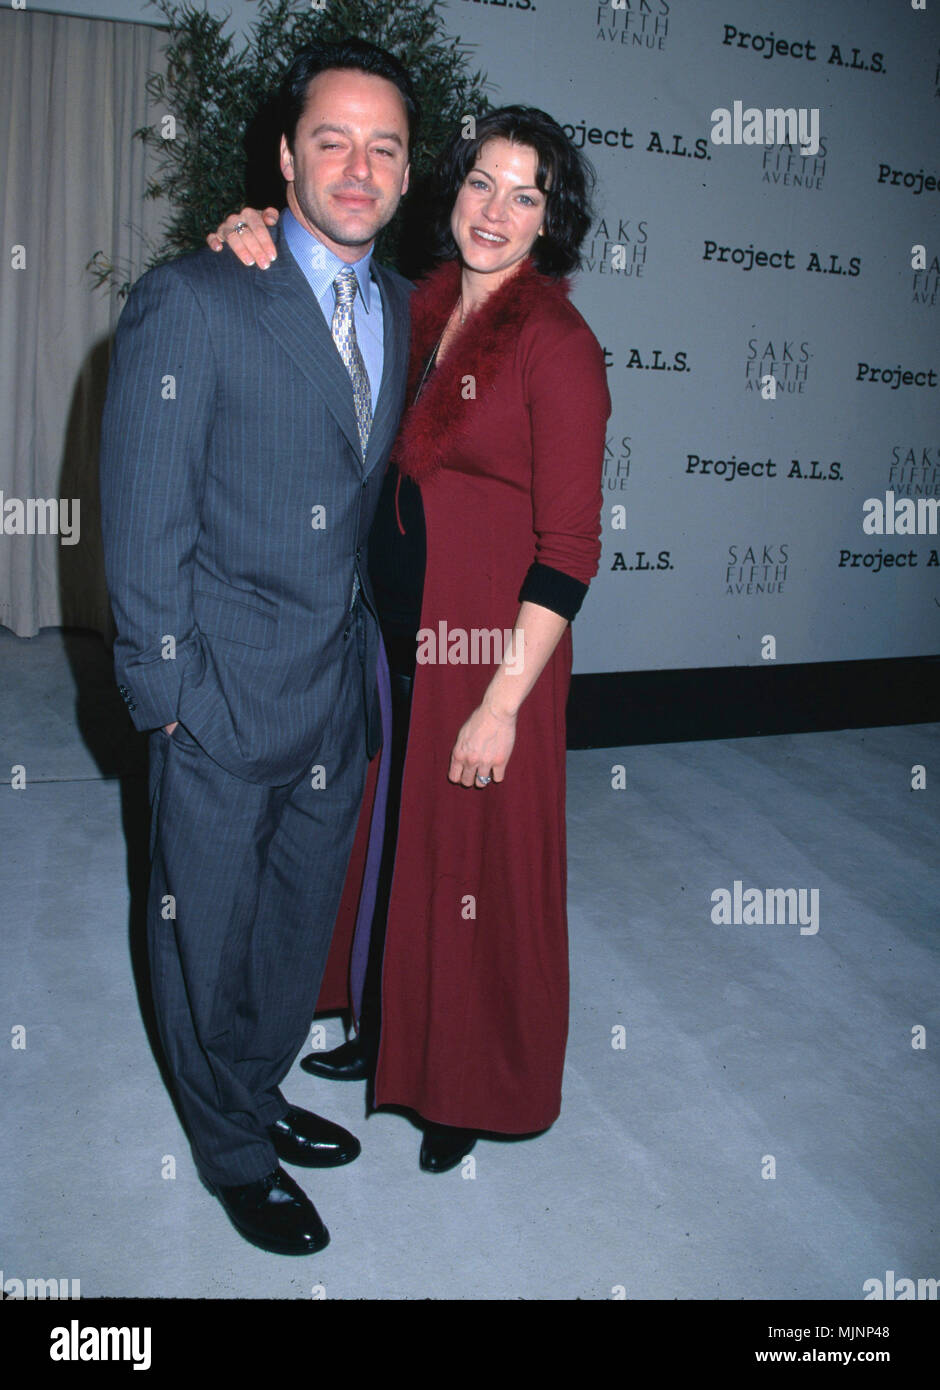 Rya Kihlstedt High Resolution Stock Photography And Images Alamy Jump to navigation jump to search. https www alamy com gil bellows and wife rya kihlstedt posing at benefit tsuni bourquard gil bellows and wife rya kihlstedt gil bellows and wife rya kihlstedt gil bellows and wife rya kihlstedt event in hollywood life california red carpet event vertical usa film industry celebrities photography bestof arts culture and entertainment topix celebrities fashion from the red carpet 1994 2000 one person vertical best of hollywood life event in hollywood life california red carpet and backstage usa film industry celebrities photography bestof arts culture and entertainment image183645848 html